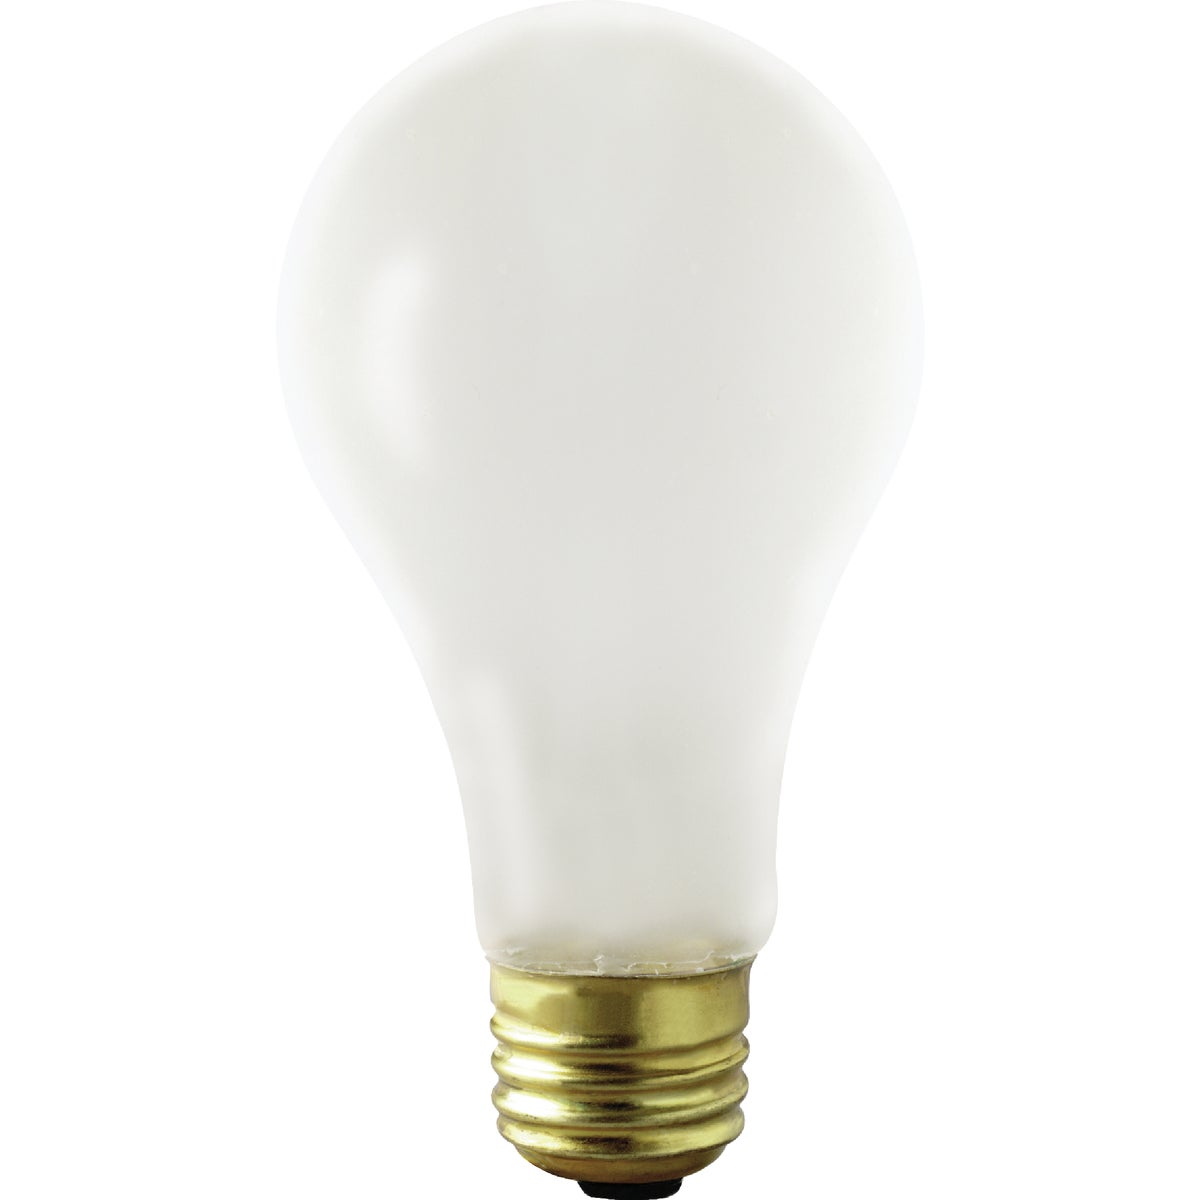 75W CLR TOUGH BULB - 46895 by G E Lighting